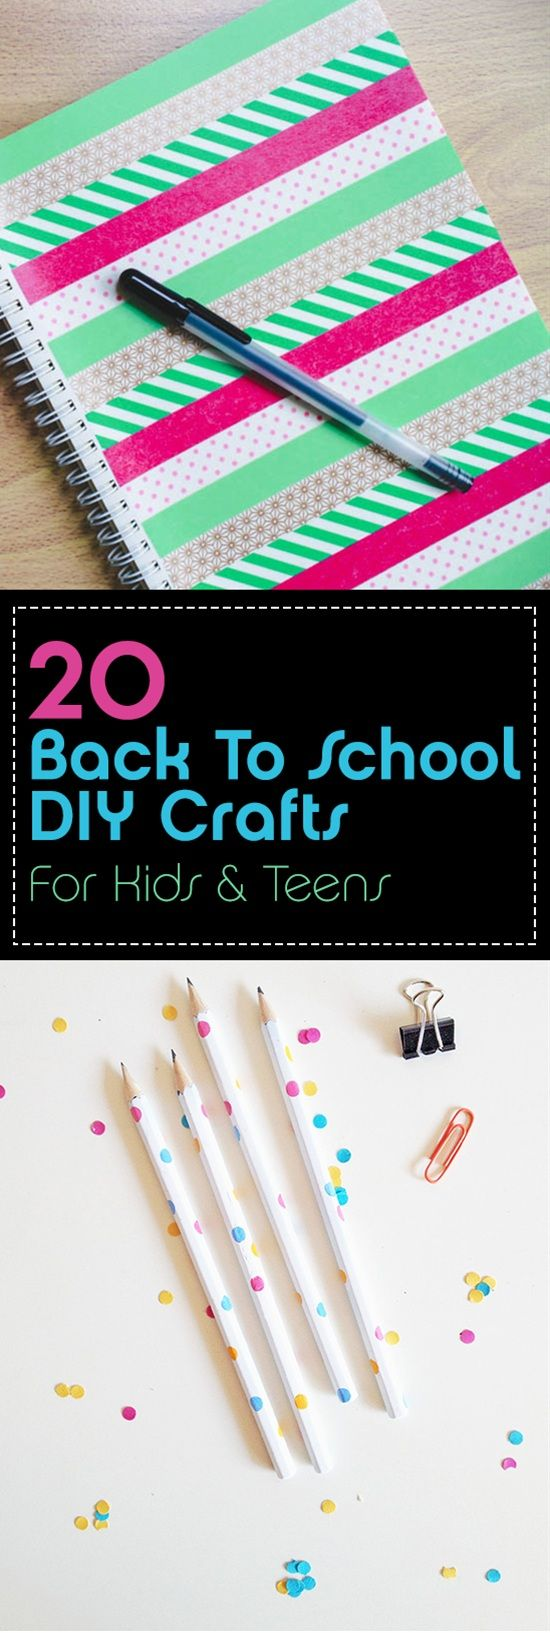 With school just around the corner, getting all school supplies for your kids And teens is your priority. That's a good opportunity to work on some craft projects and have fun with your children. These awesome 20 projects are fun and easy to complete, it will also save you some money.